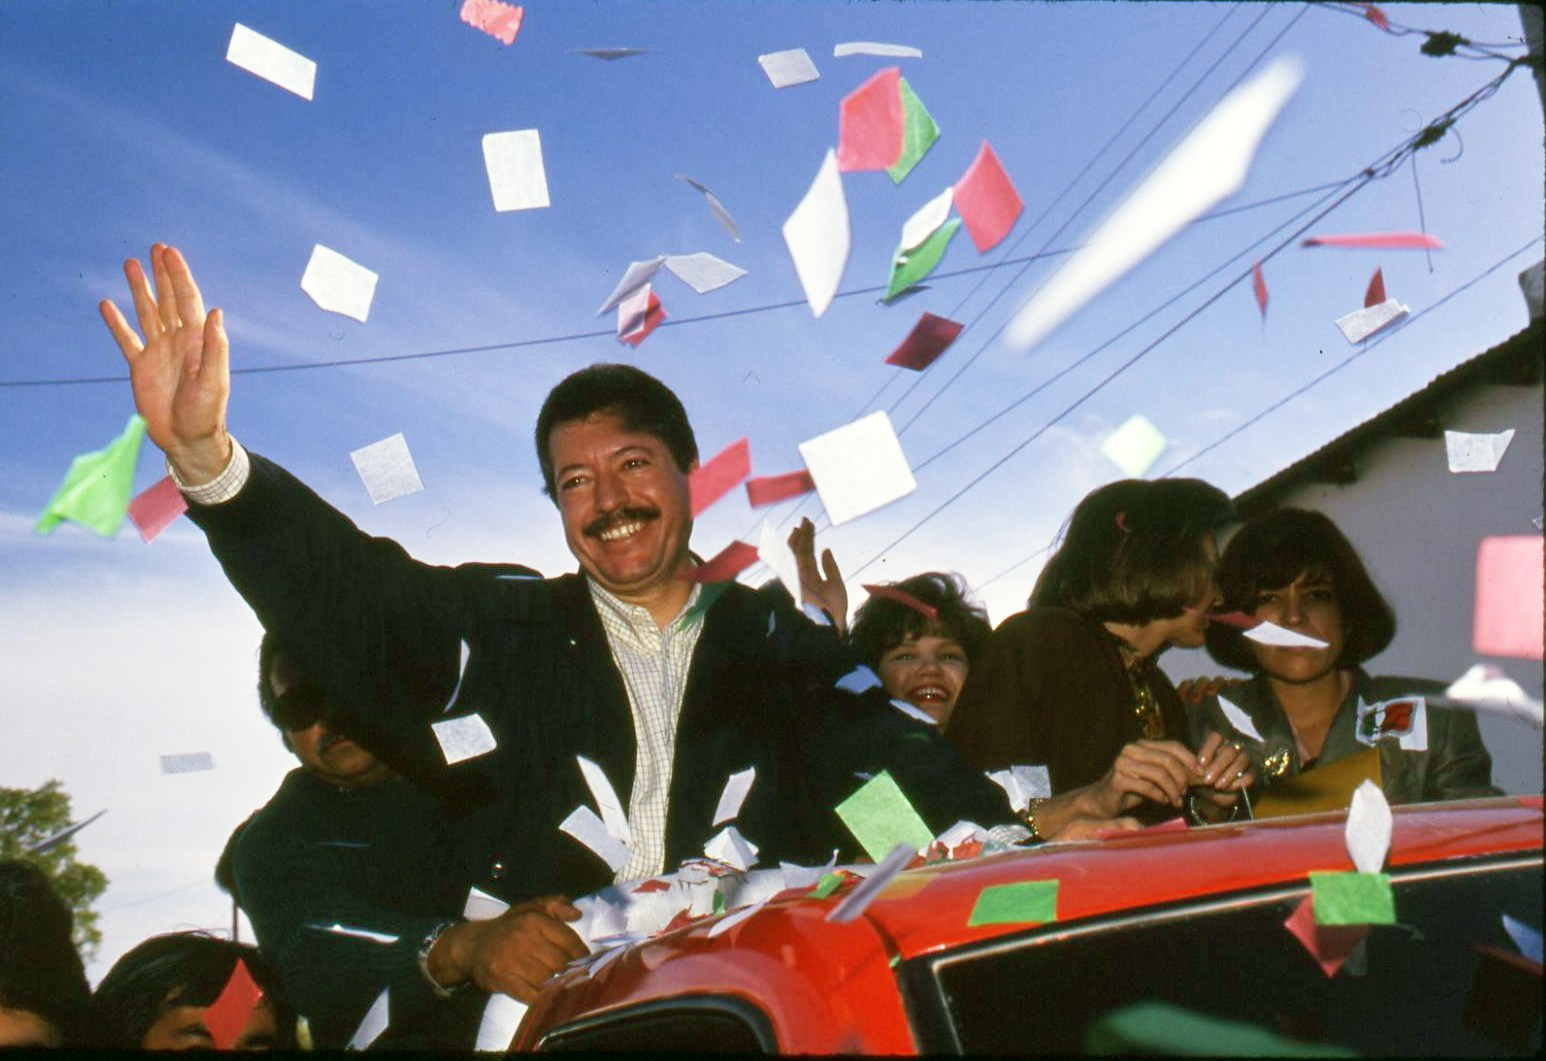 Luis-Donaldo-Colosio-Murrieta.jpg